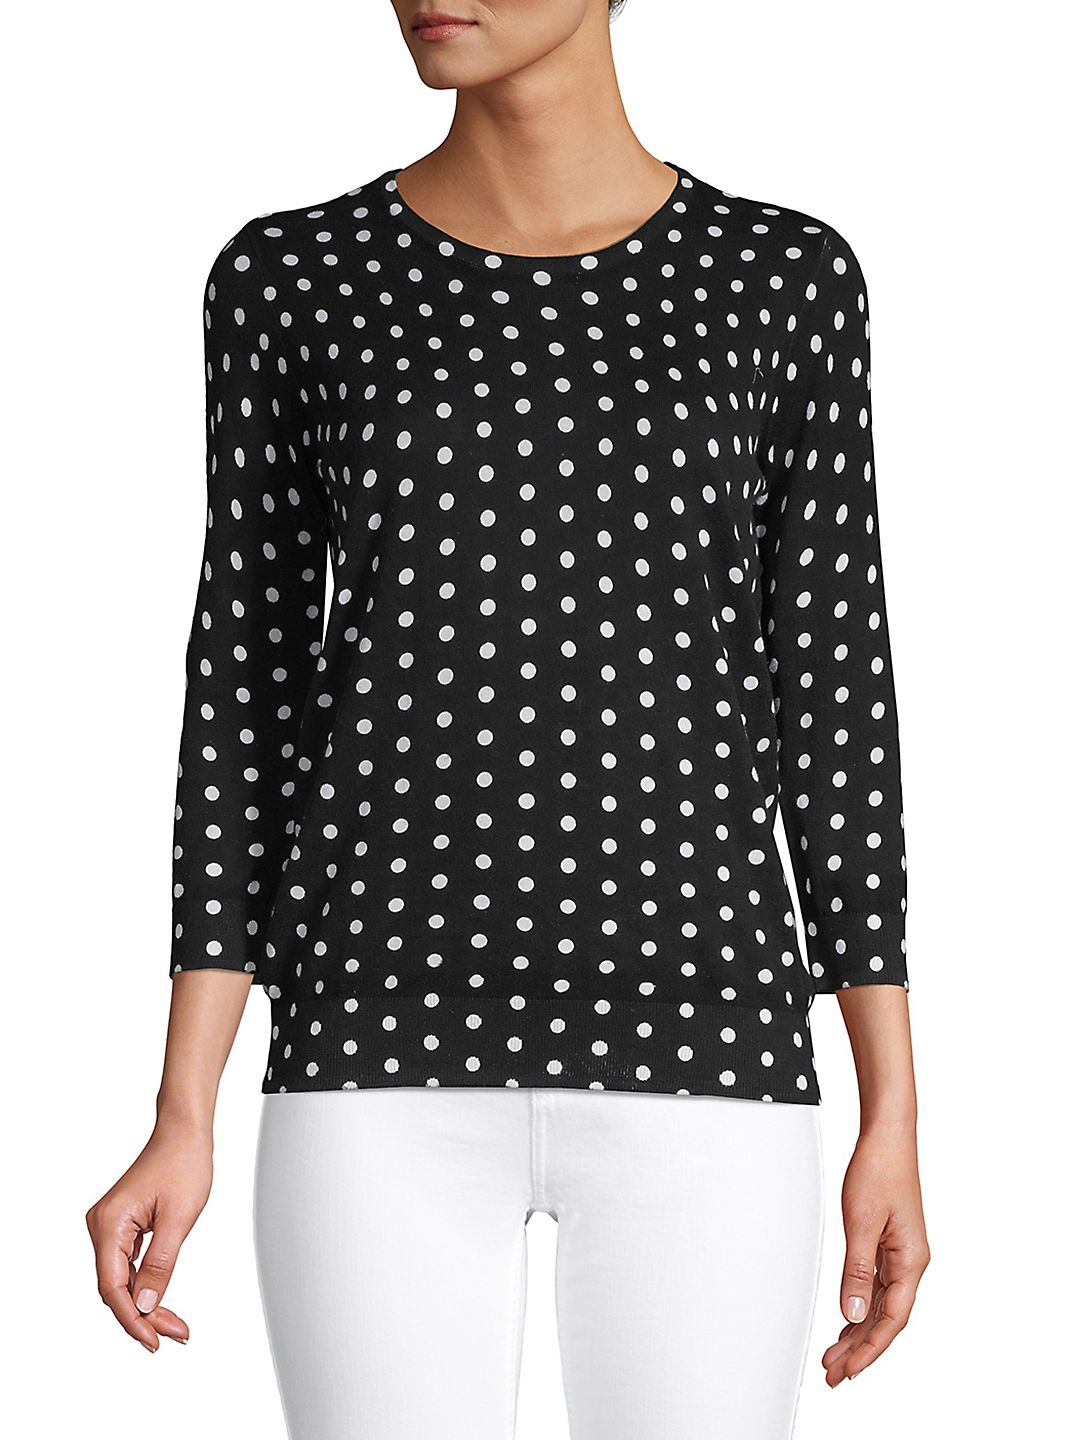 Petite Dotted Pattern Top